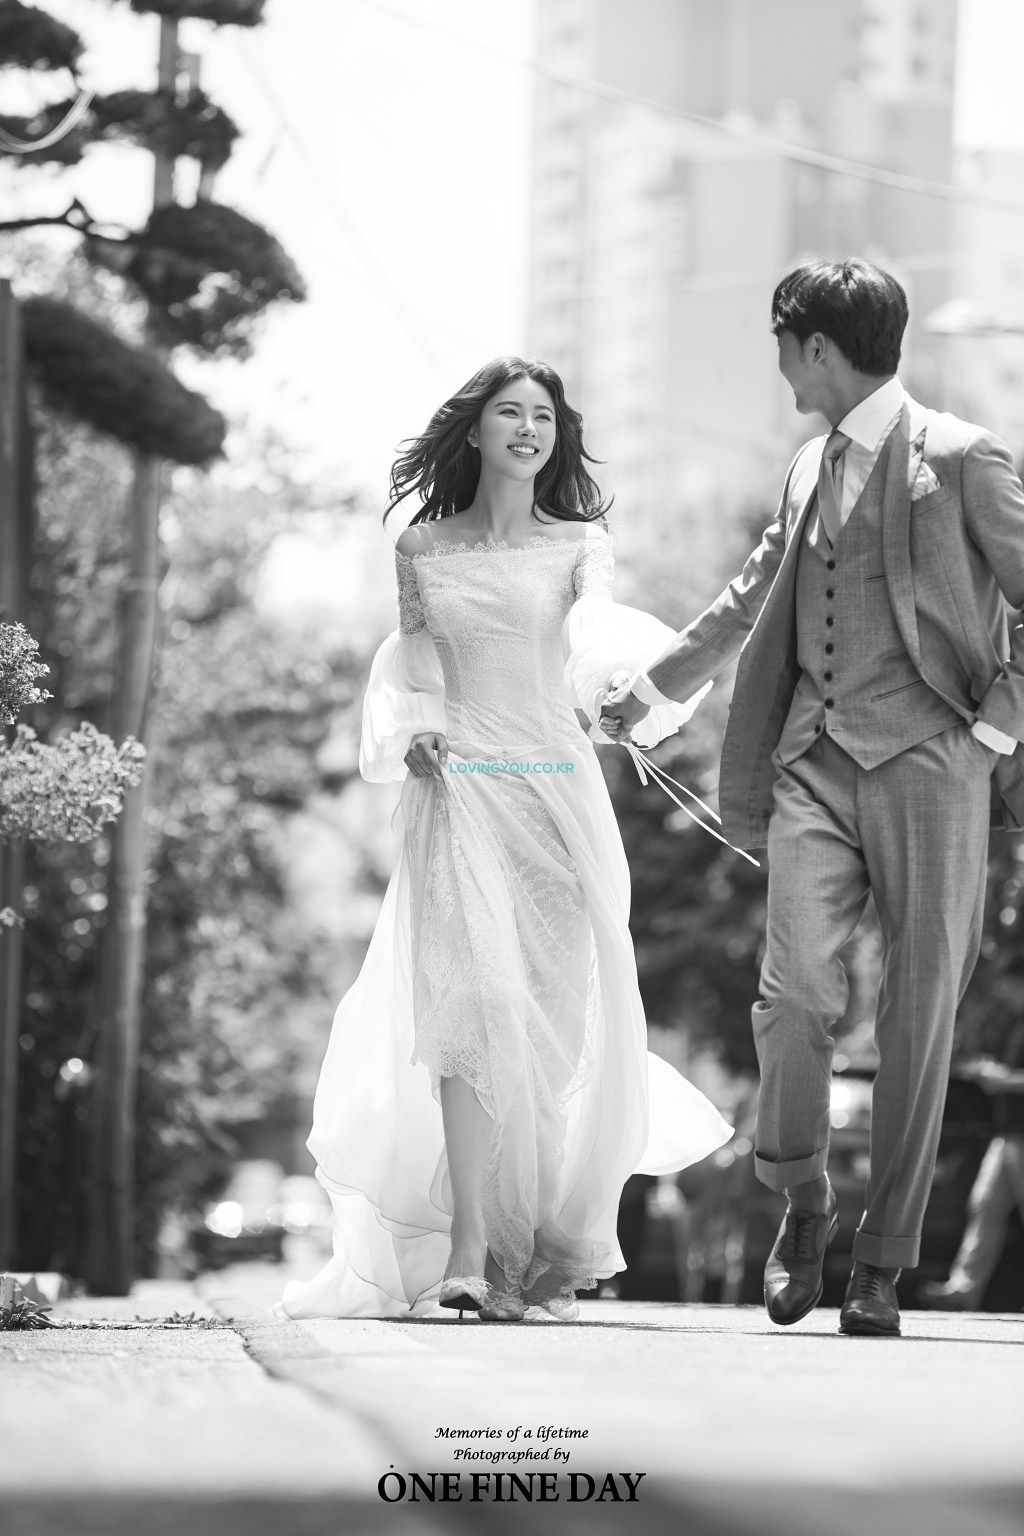 One Fine Day 2020 The New One Fine Day Korea Pre Wedding Photoshoot By Lovingyou In 2020 Wedding Photoshoot Pre Wedding Photoshoot Wedding Dresses